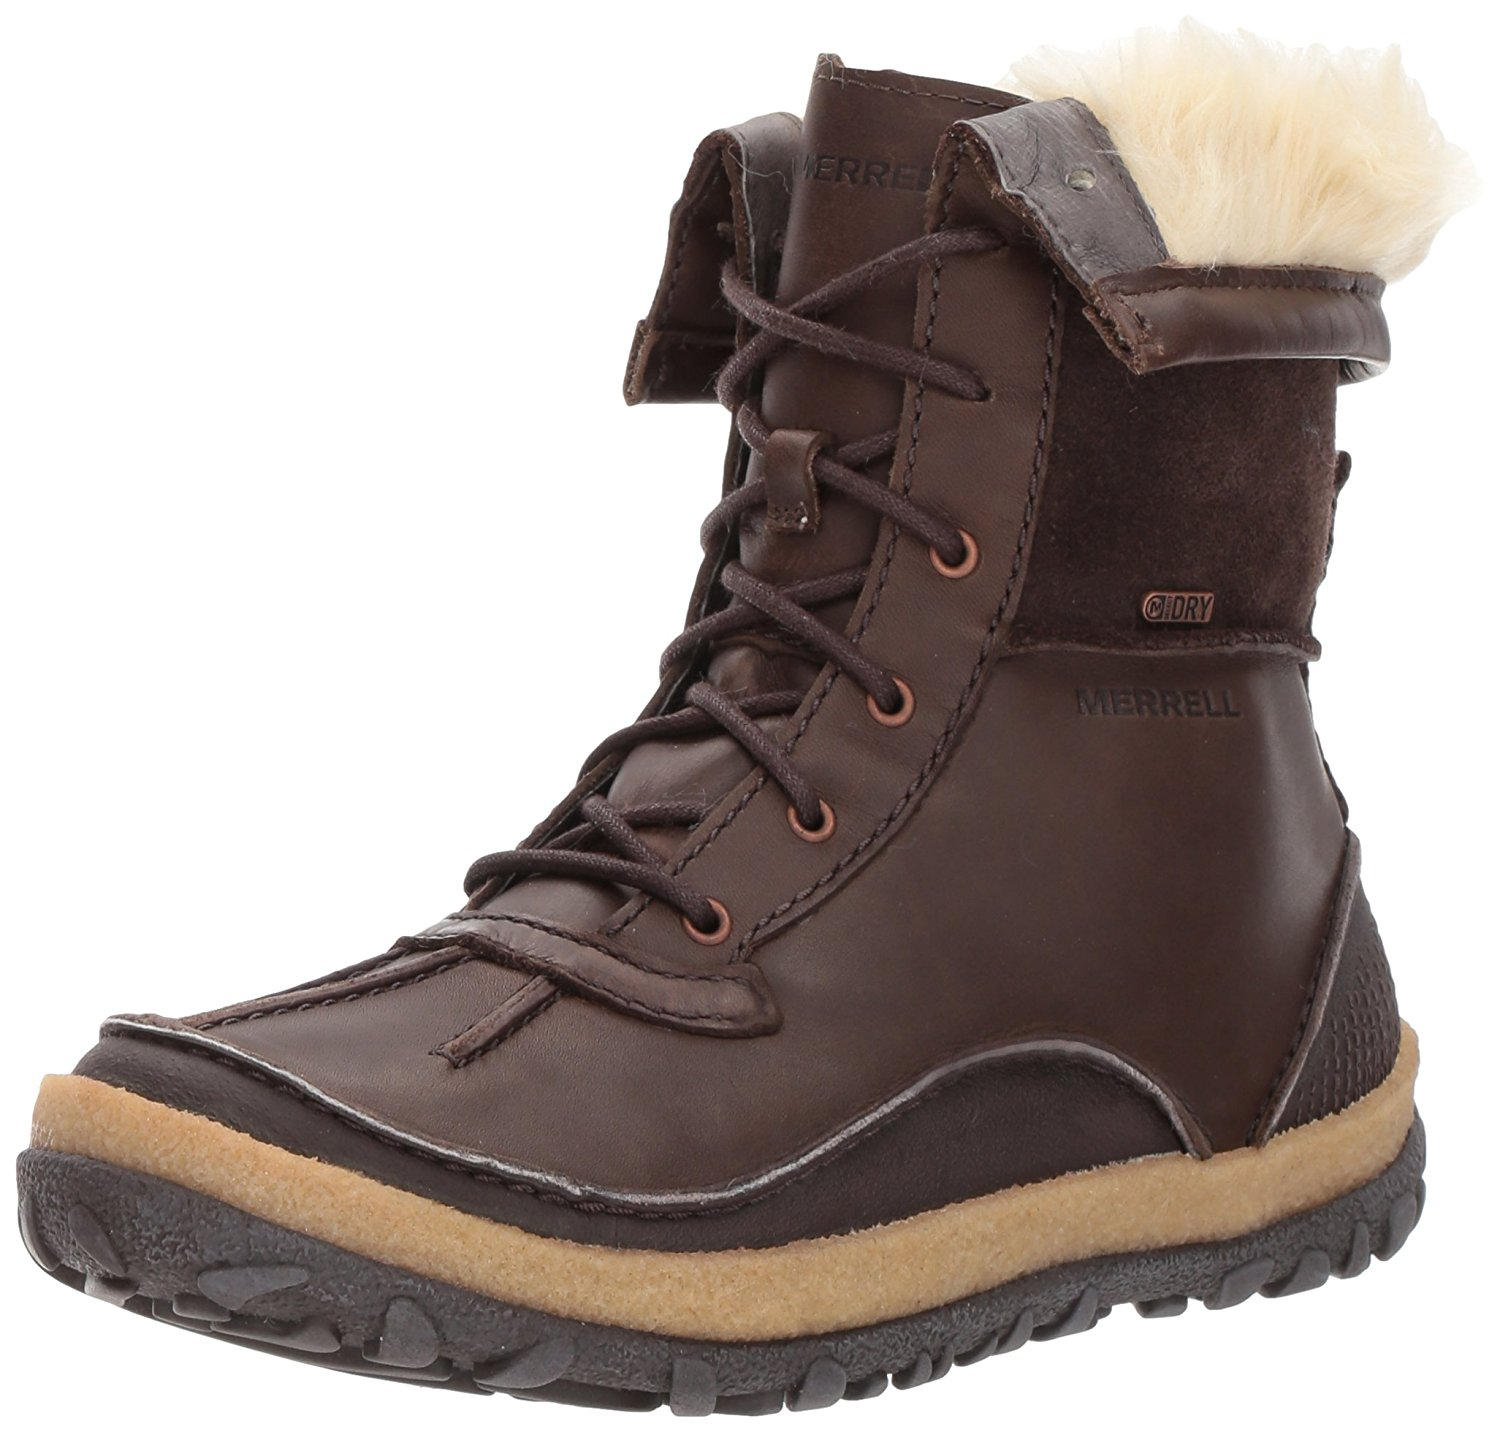 02c7a8e33b Cheap Merrell Tremblant, find Merrell Tremblant deals on line at ...